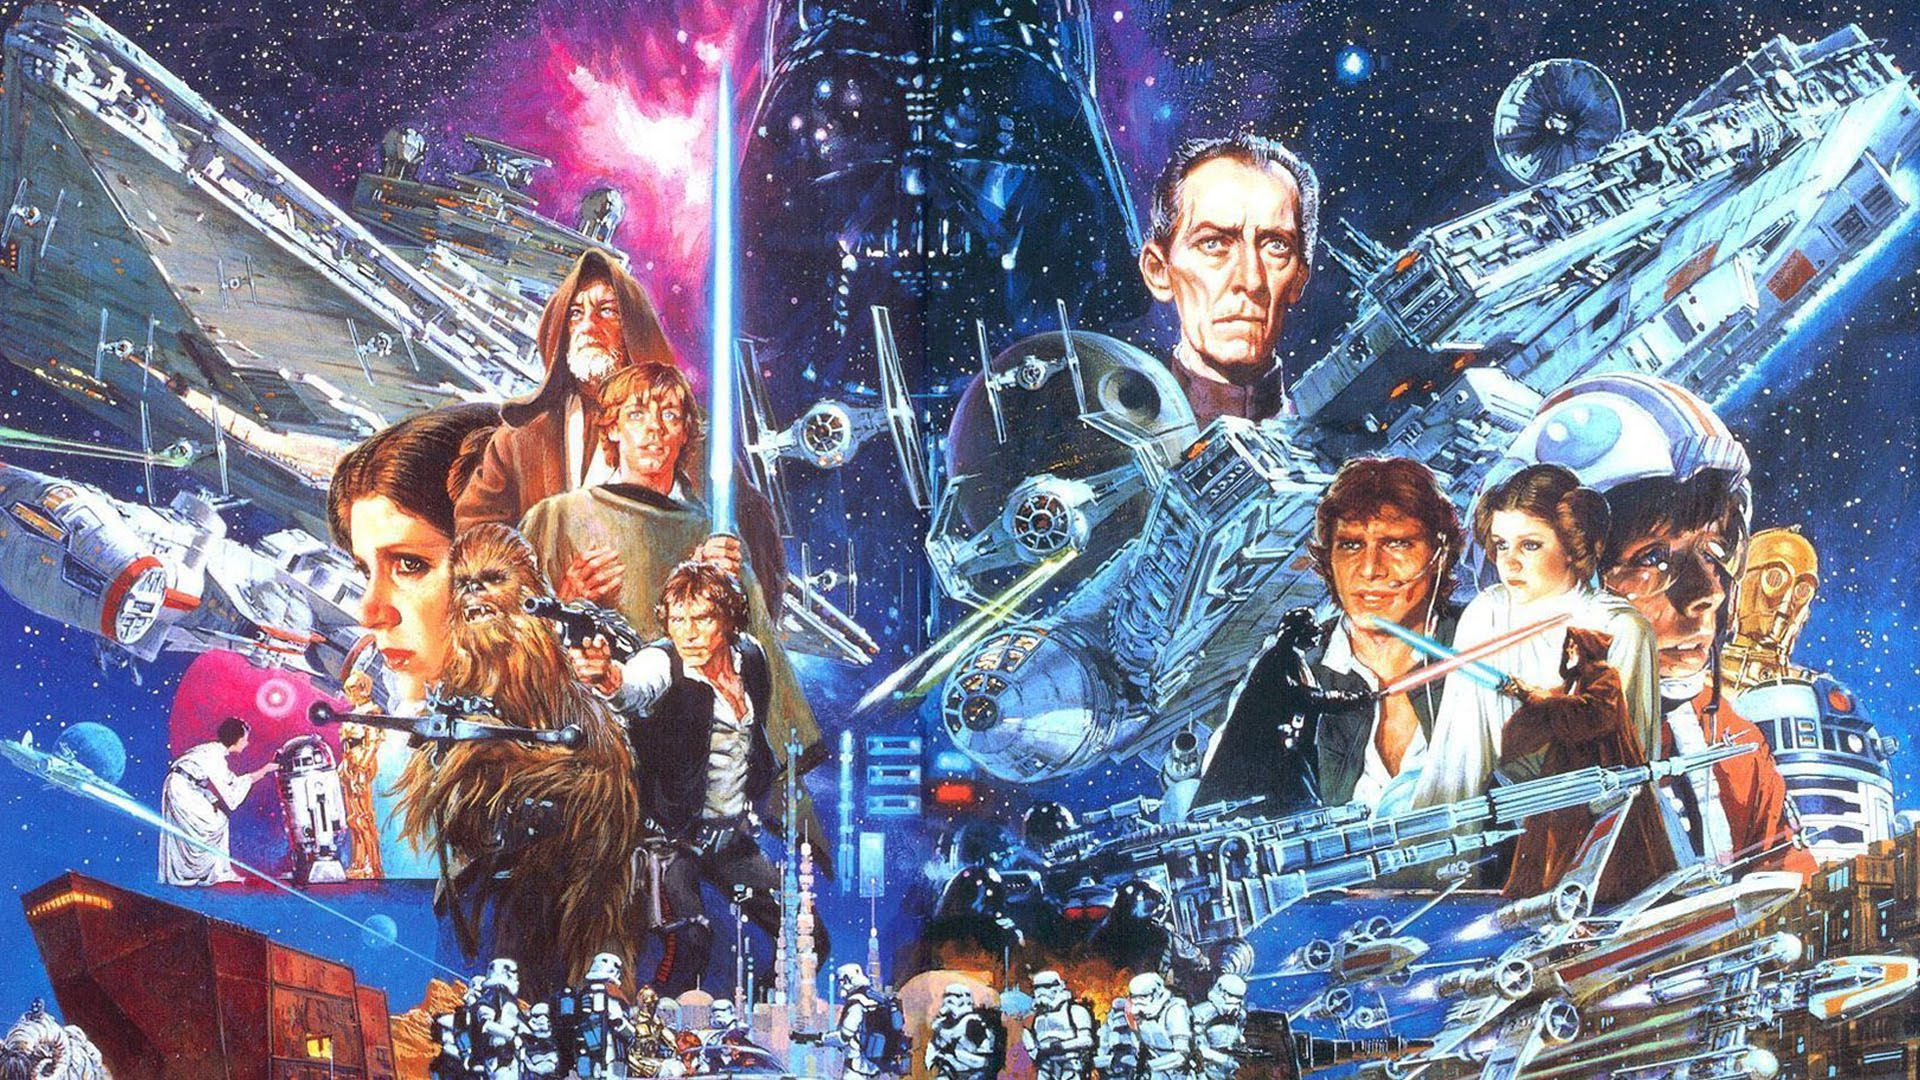 Revisiting Star Wars The Original Trilogy